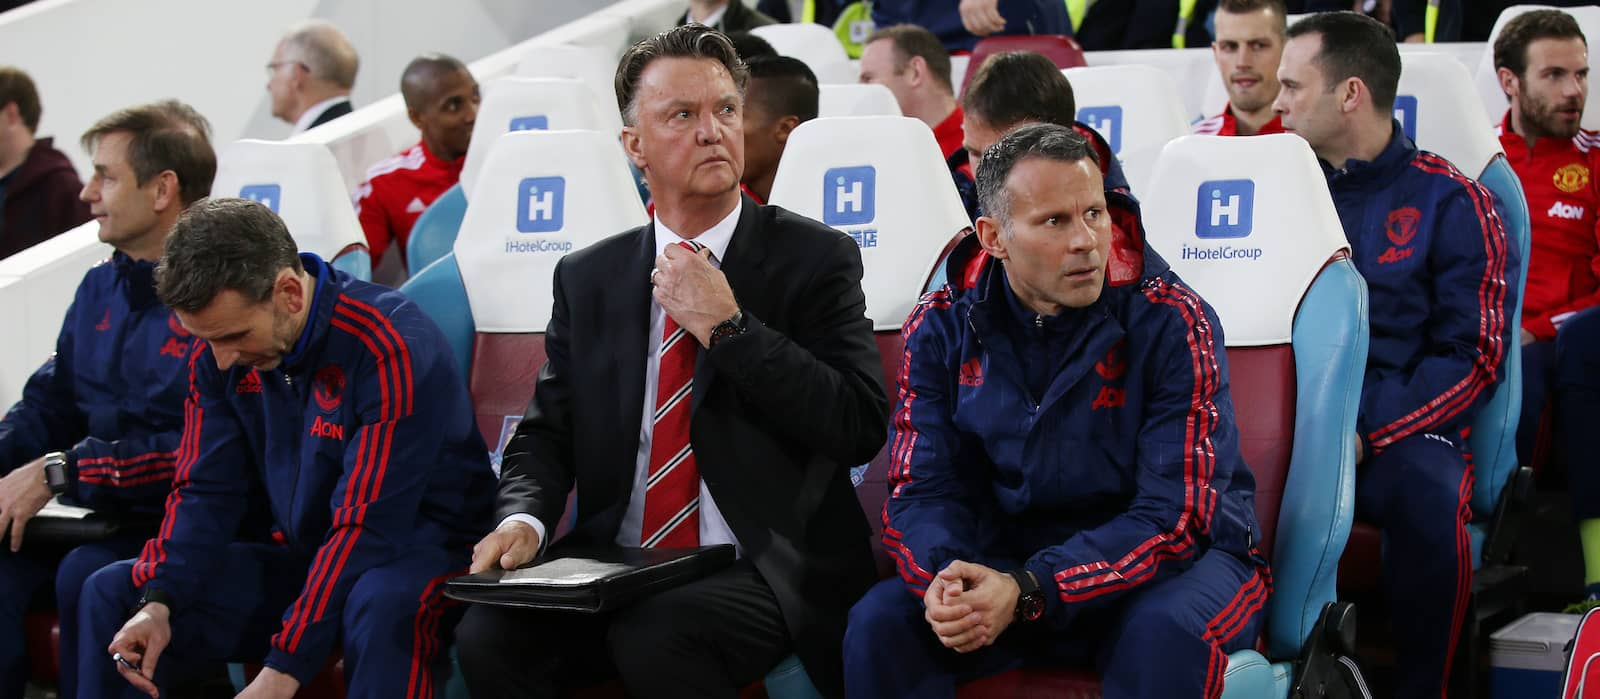 LIVE: Man United news, transfers and gossip – Van Gaal denies empty seats and praises United players